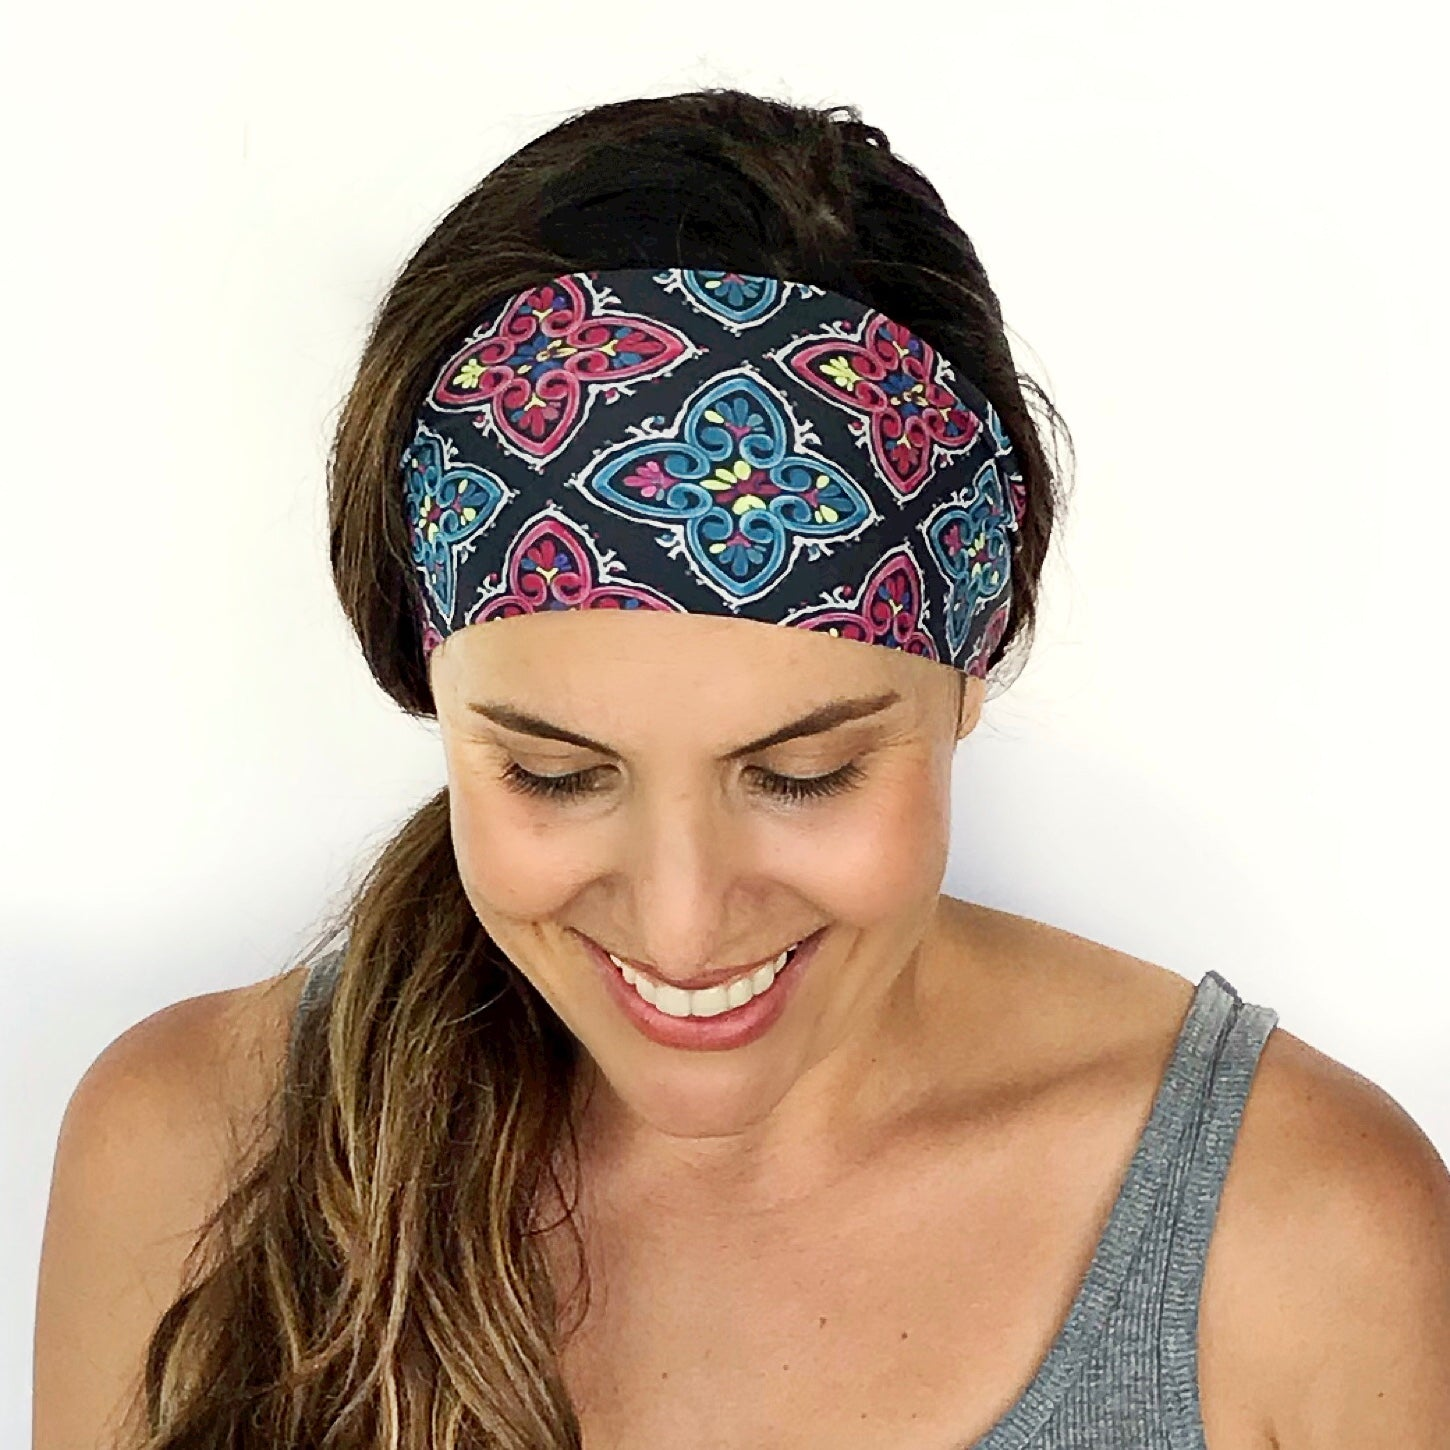 Moonbeams Workout Headband